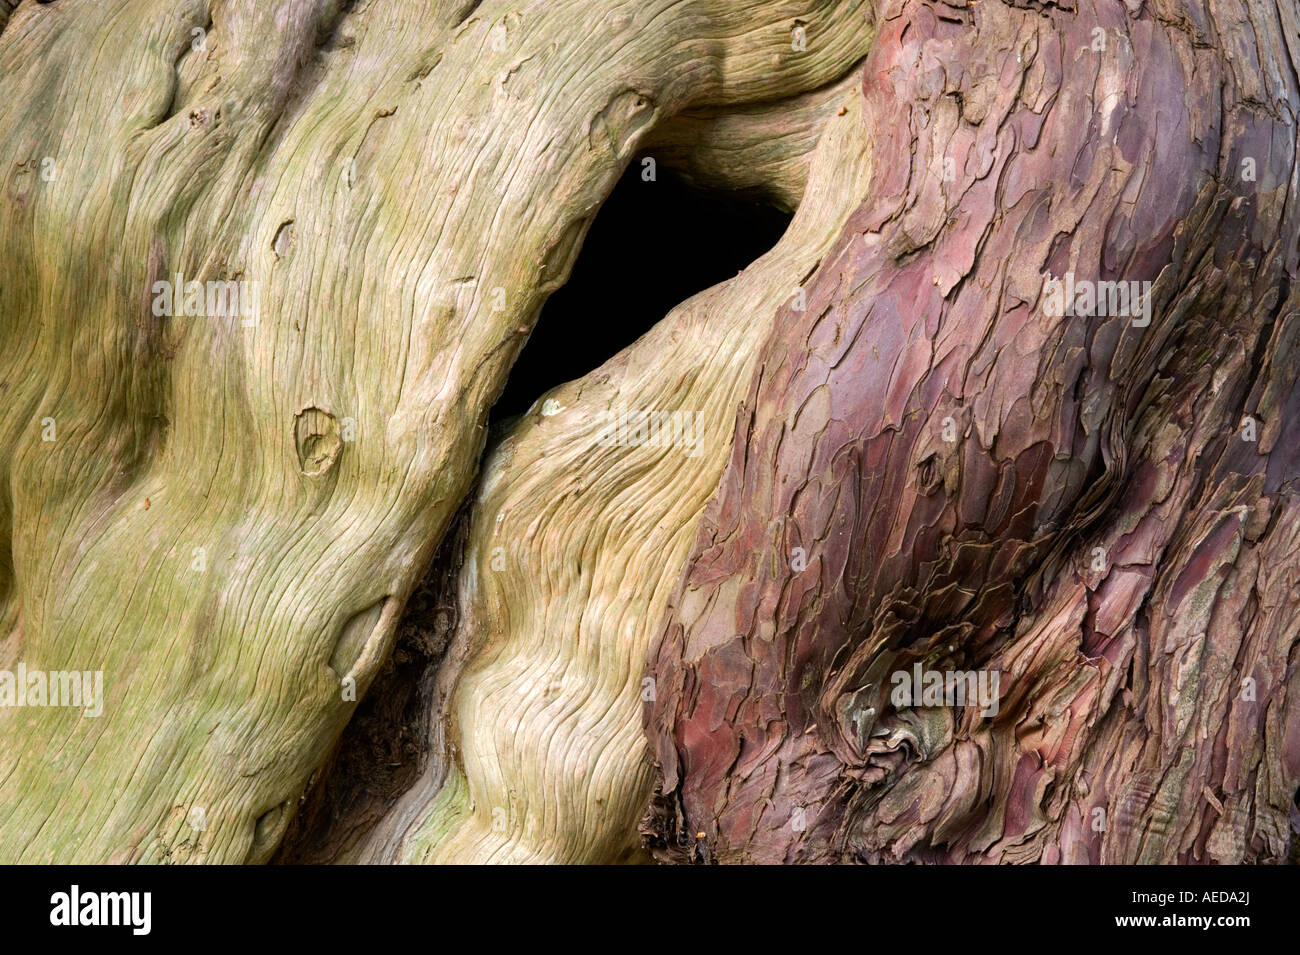 detail of ancient yew tree bark - Stock Image